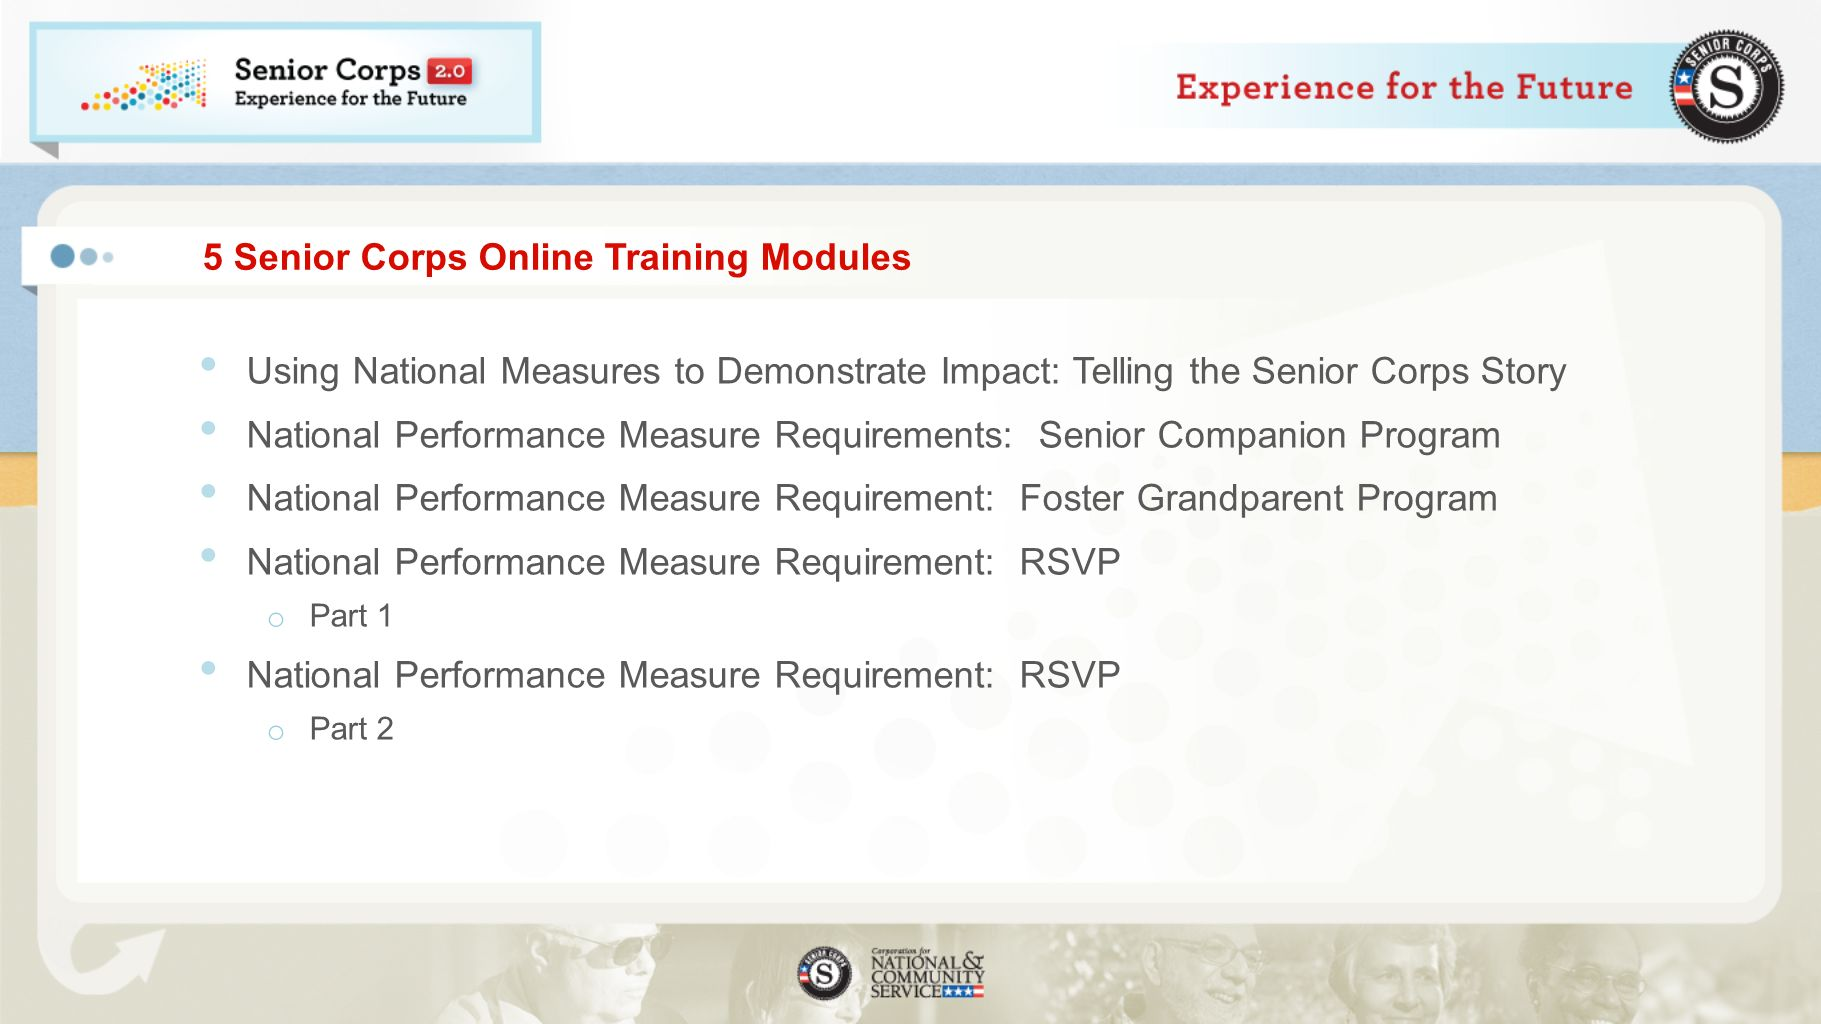 5 Senior Corps Online Training Modules Using National Measures to Demonstrate Impact: Telling the Senior Corps Story National Performance Measure Requirements: Senior Companion Program National Performance Measure Requirement: Foster Grandparent Program National Performance Measure Requirement: RSVP o Part 1 National Performance Measure Requirement: RSVP o Part 2